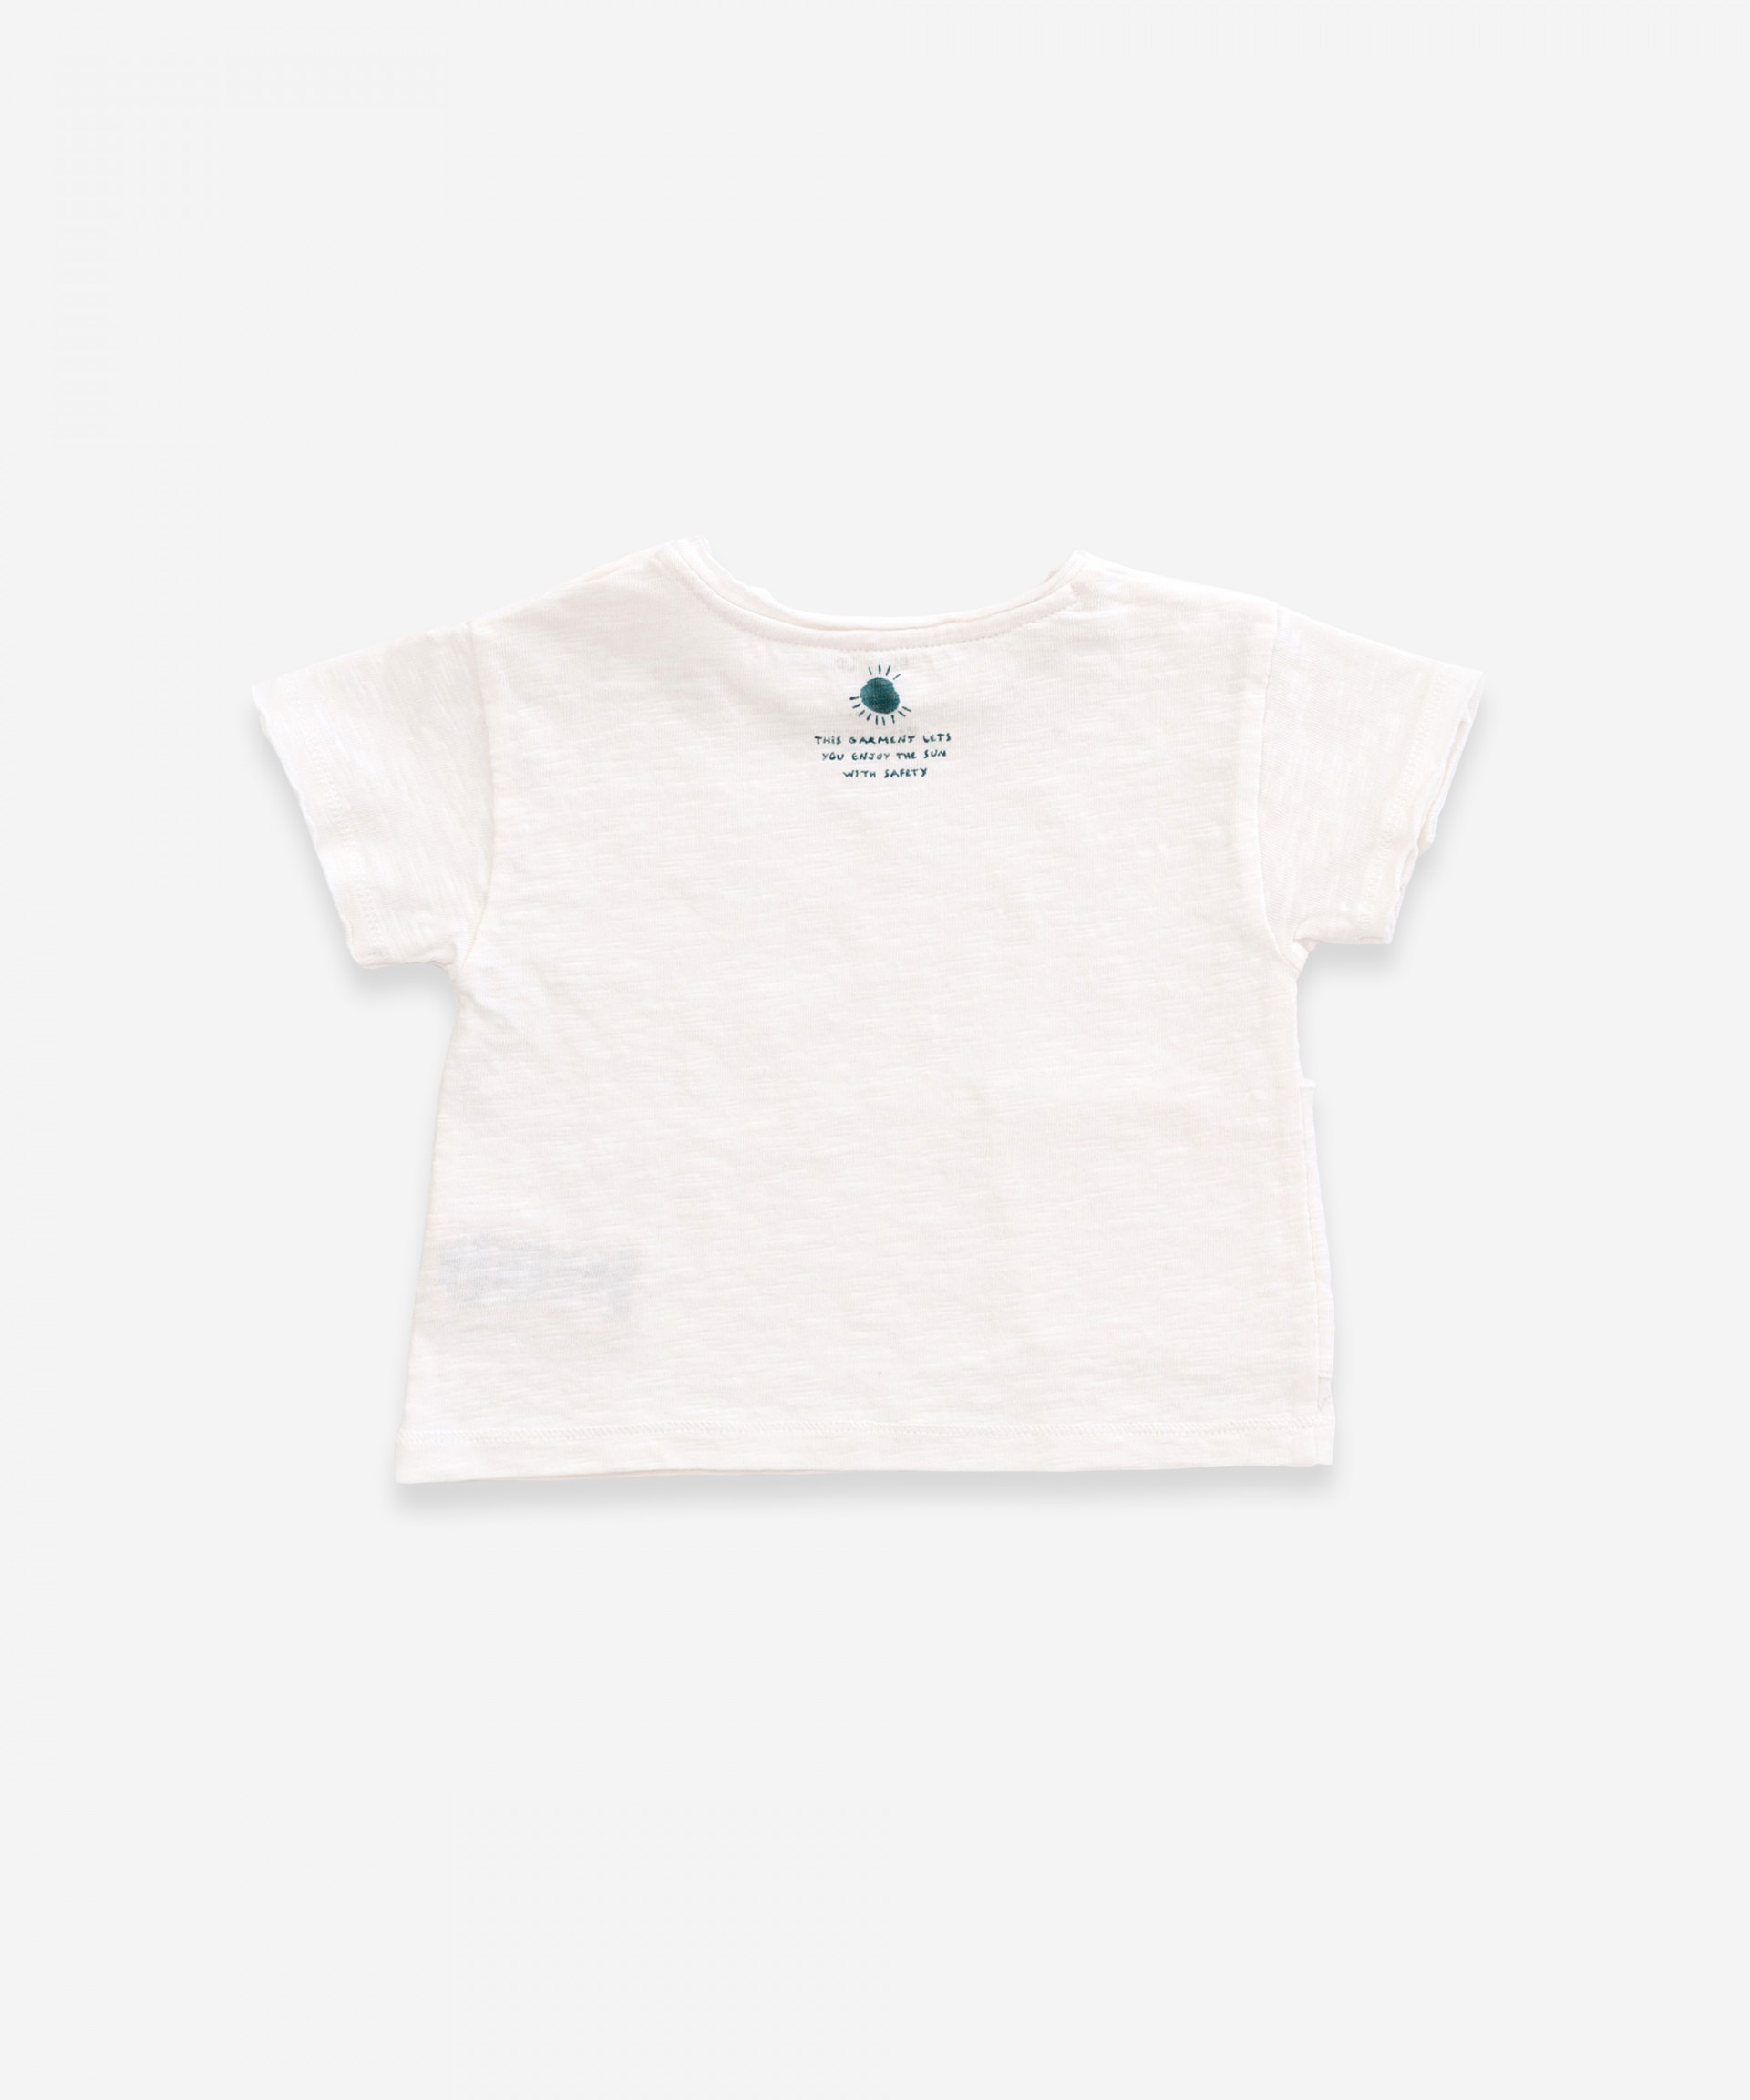 Anti-UV t-shirt in organic cotton | Weaving